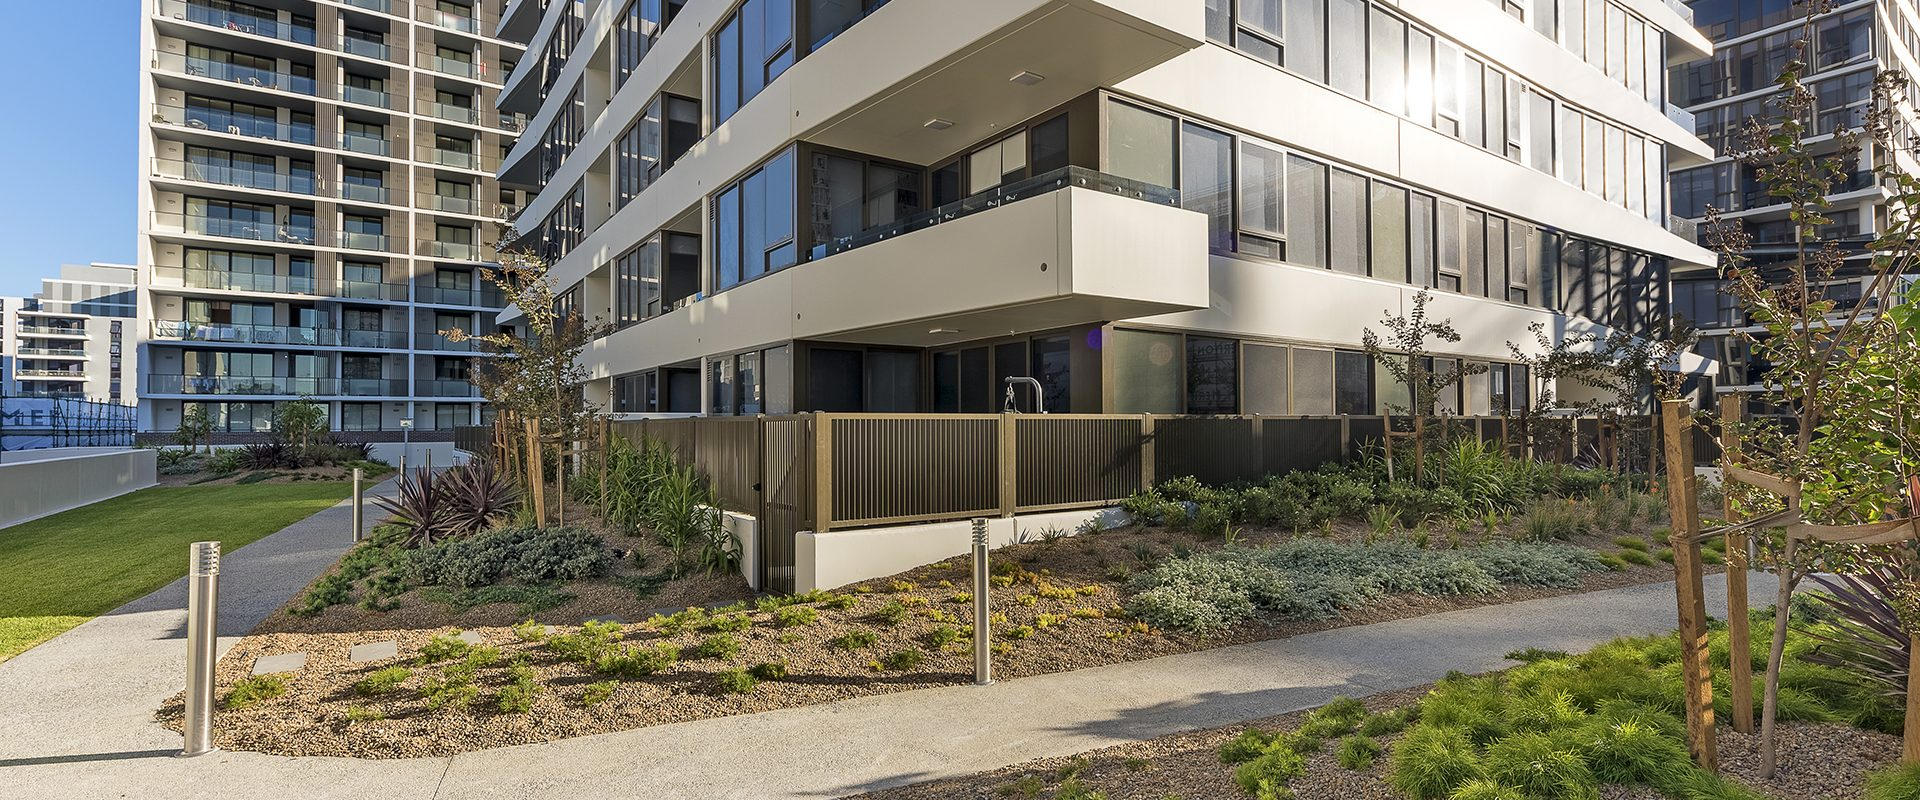 Apartments for Rent Mascot NSW | Kiara North | Meriton